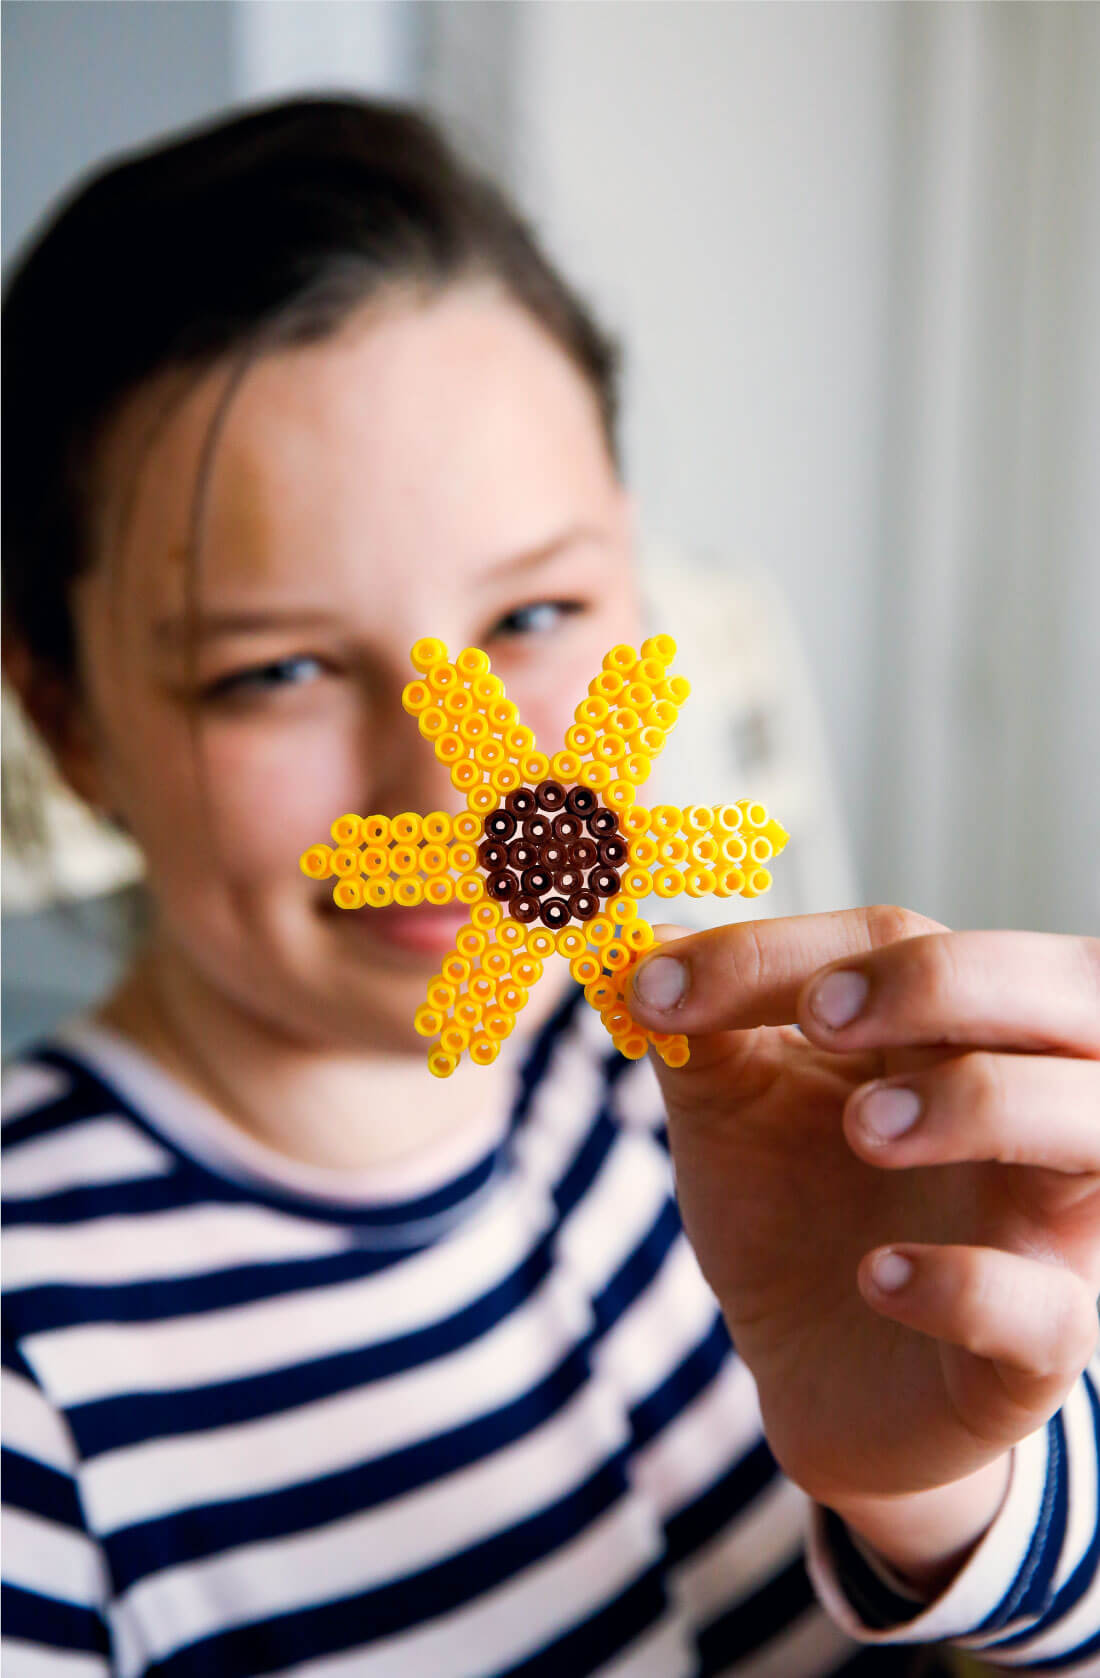 Let's play for change - an awesome Ikea campaign to encourage play. We loved playing with Perler Beads. Julia made a sunflower. www.thirtyhandmadedays.com